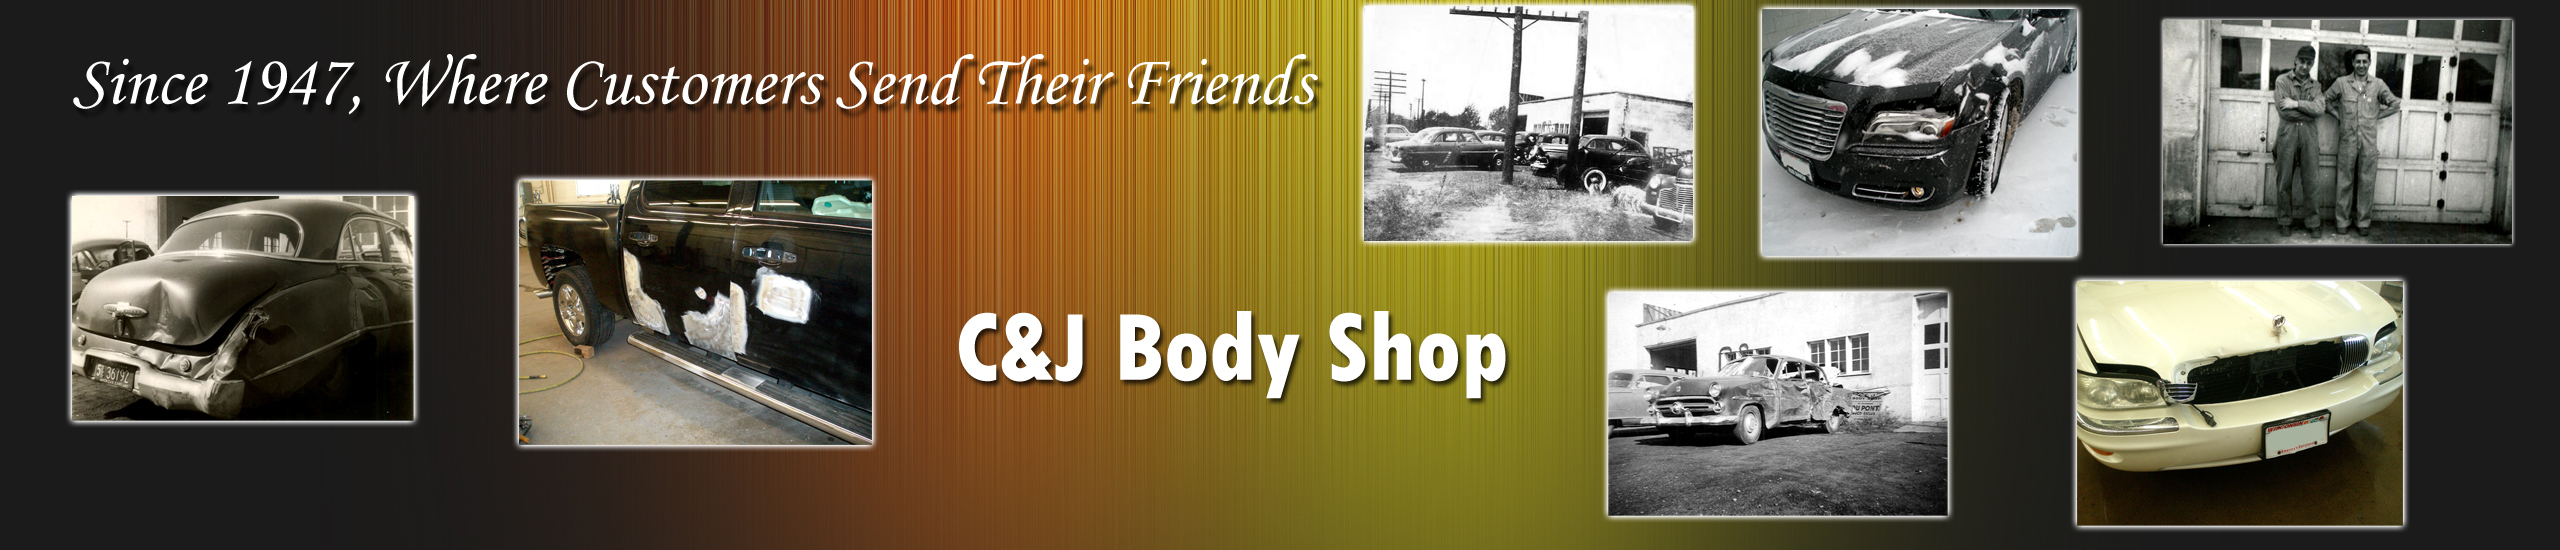 C&J Body Shop